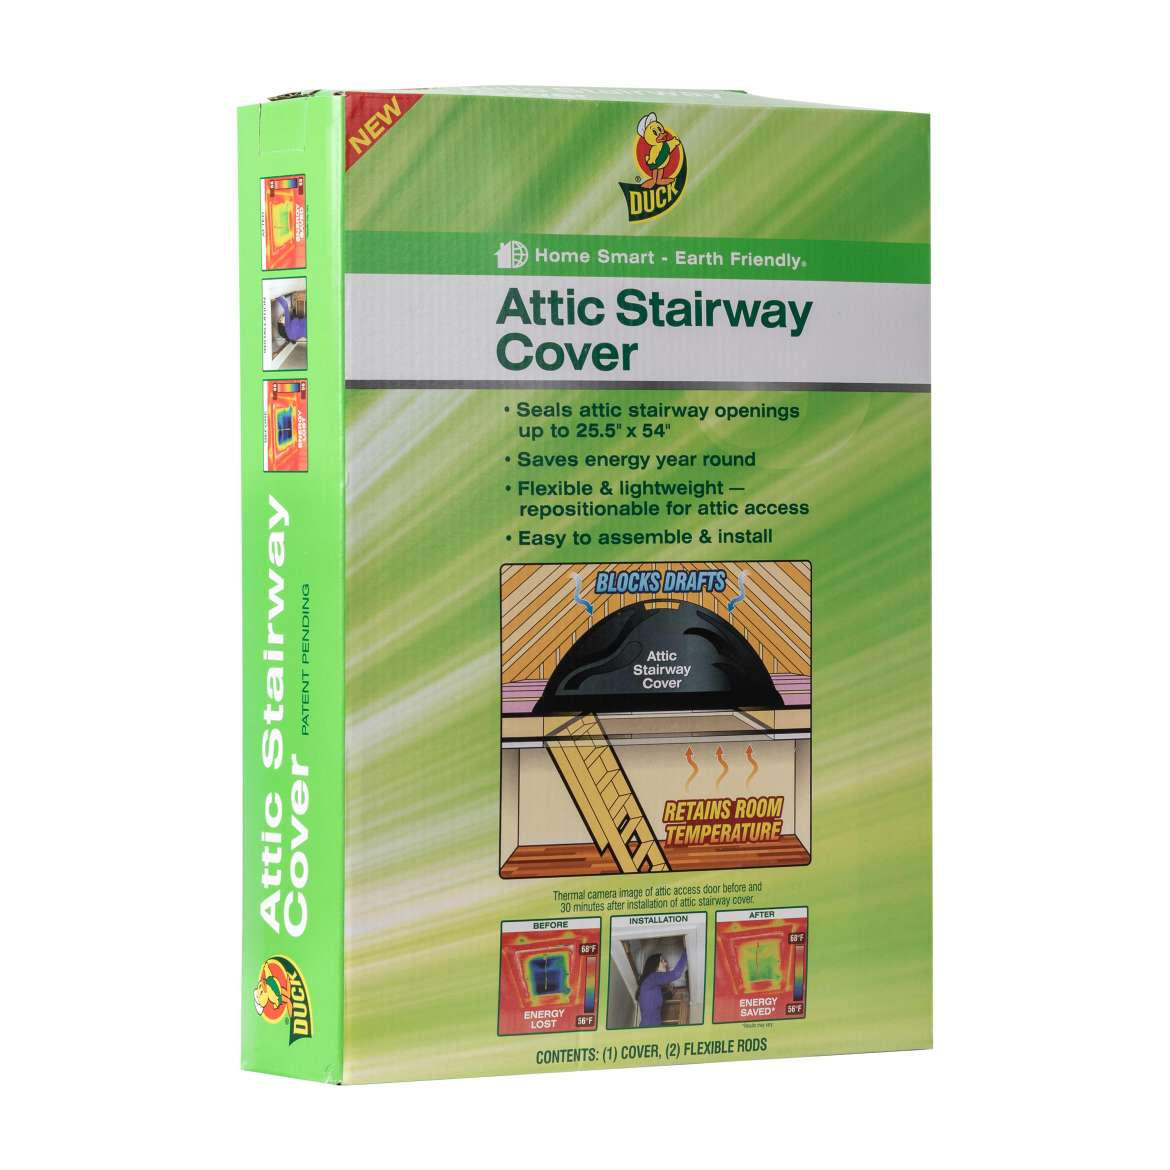 Attic Stairway Cover Image